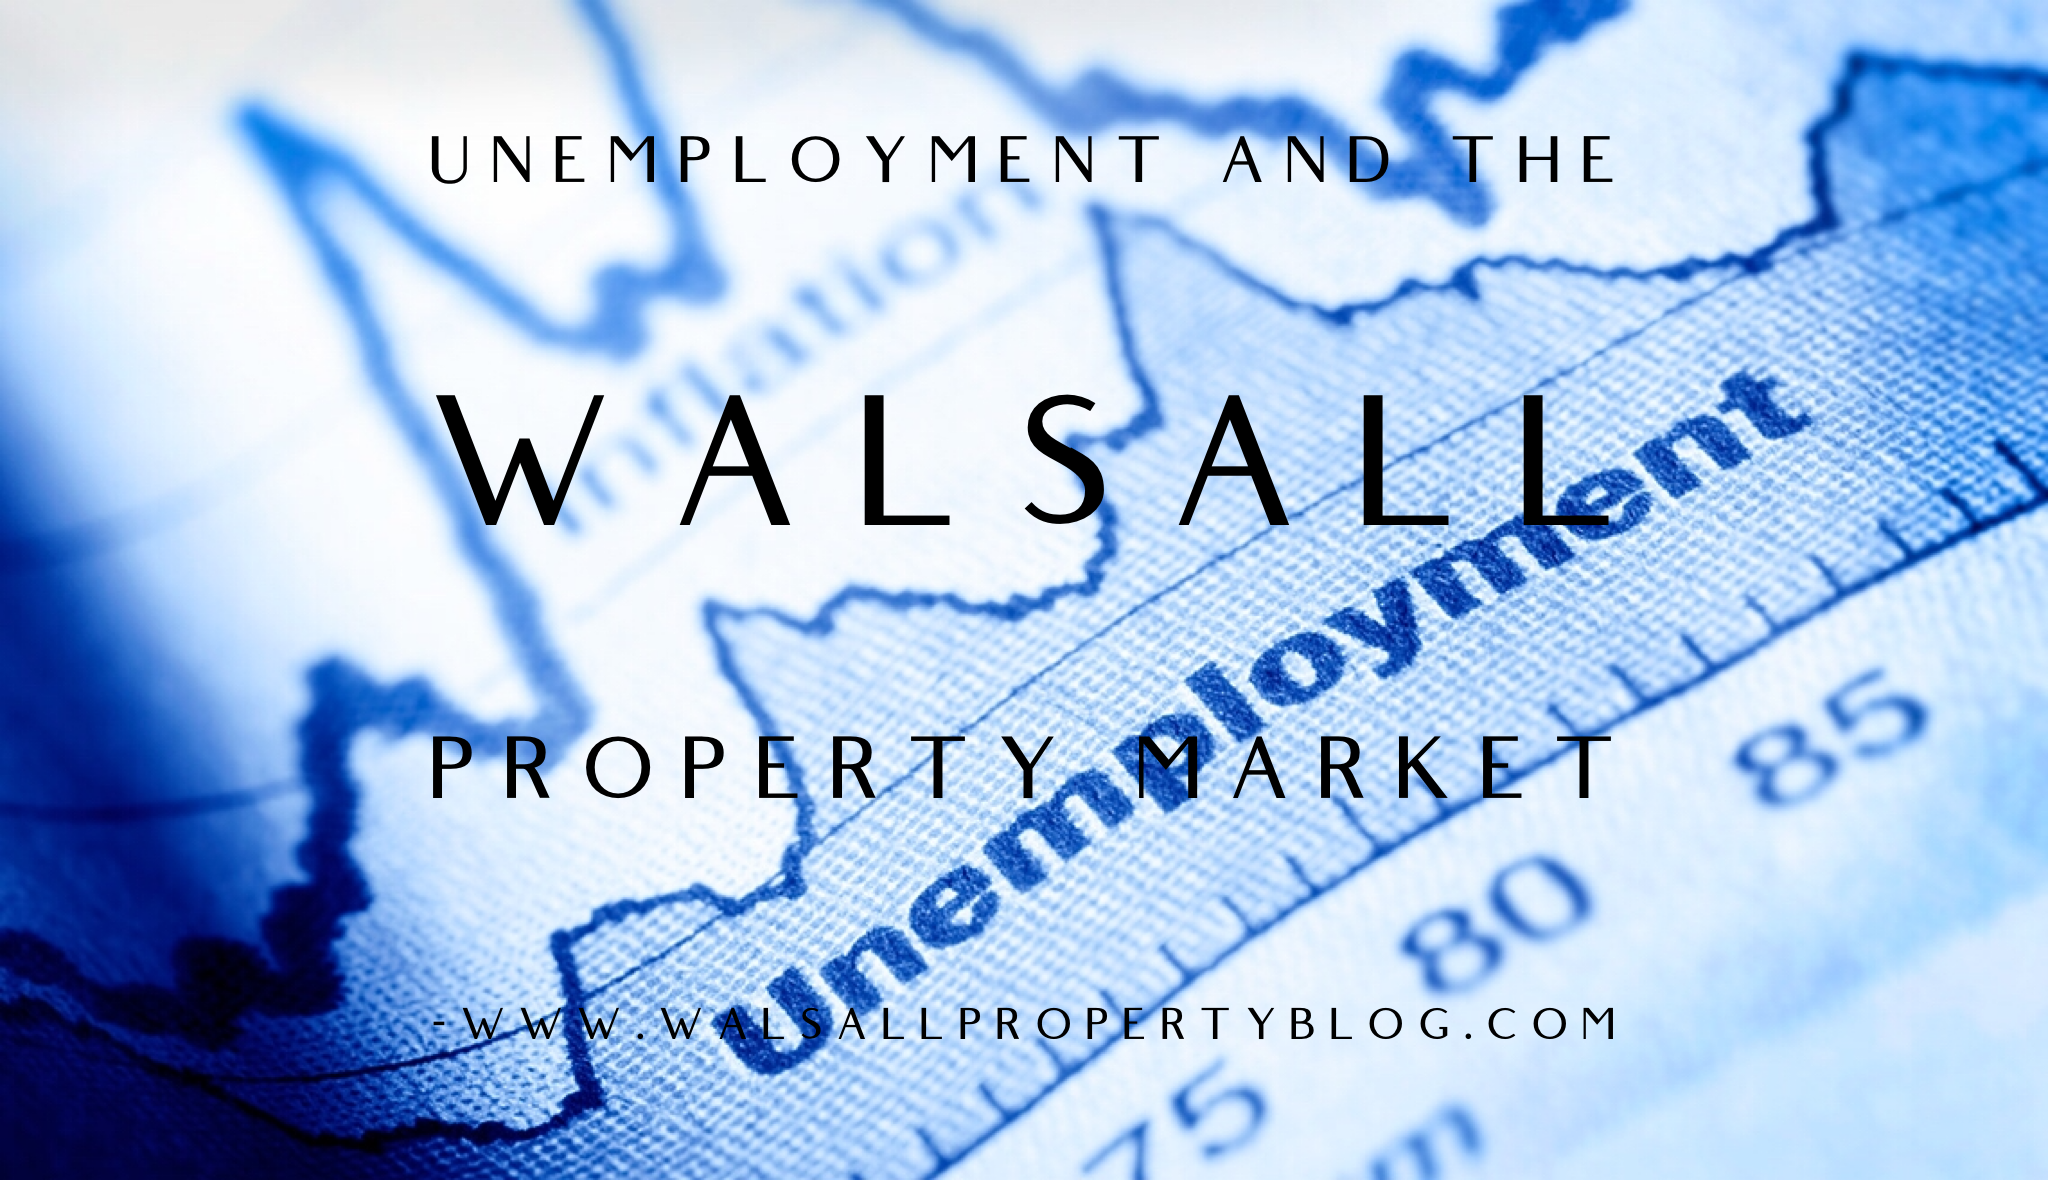 Unemployment and the Walsall Property Market